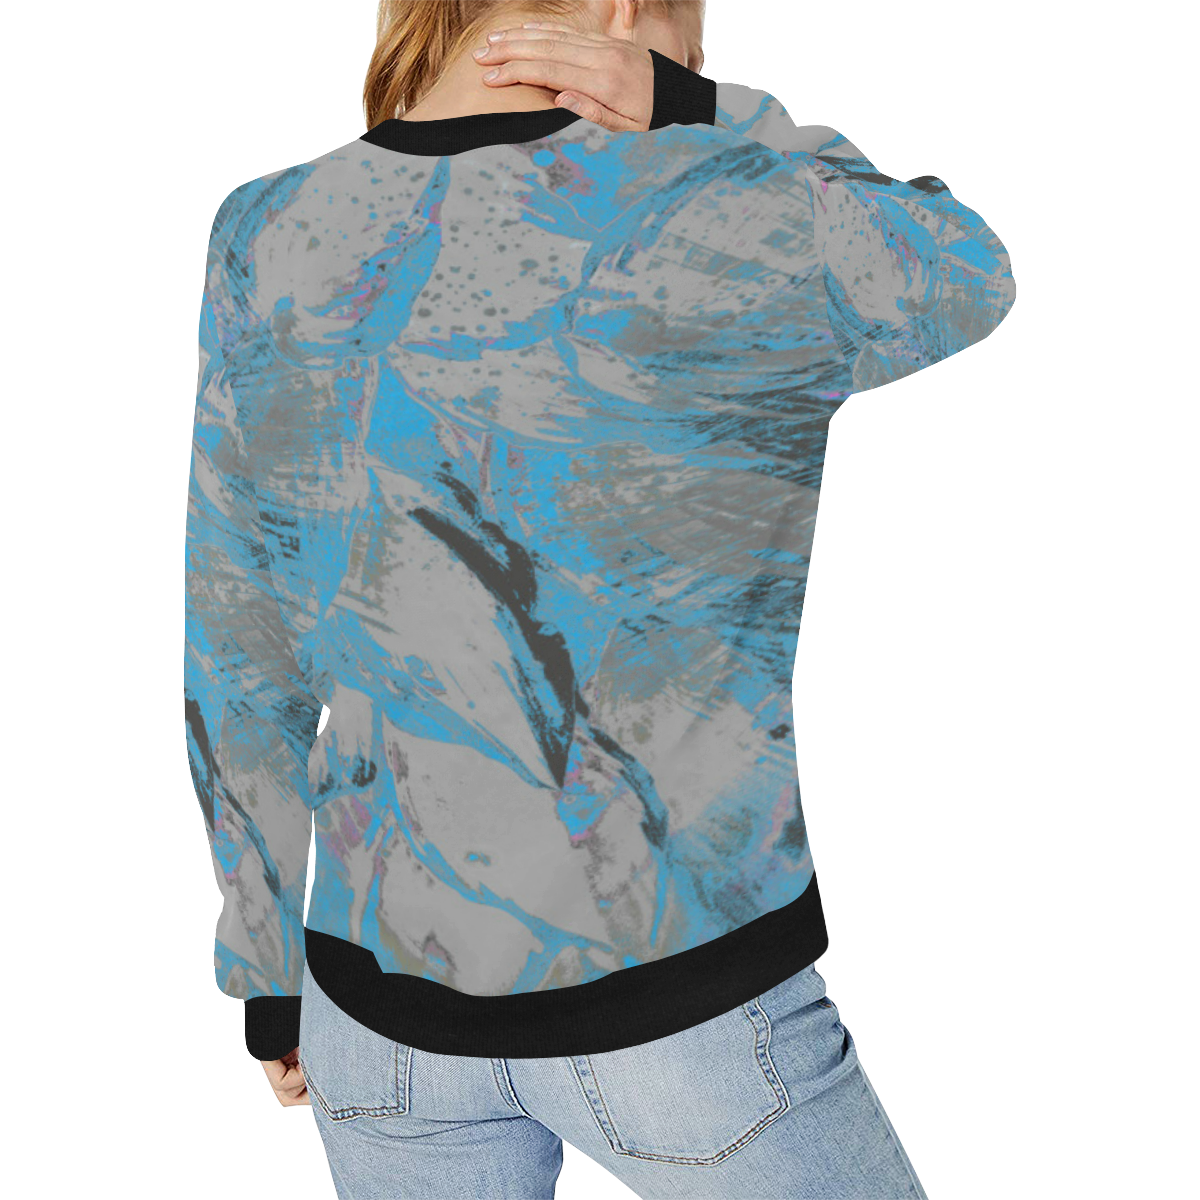 wheelVibe_8500 7 DIRTY BLUE low Women's Rib Cuff Crew Neck Sweatshirt (Model H34)